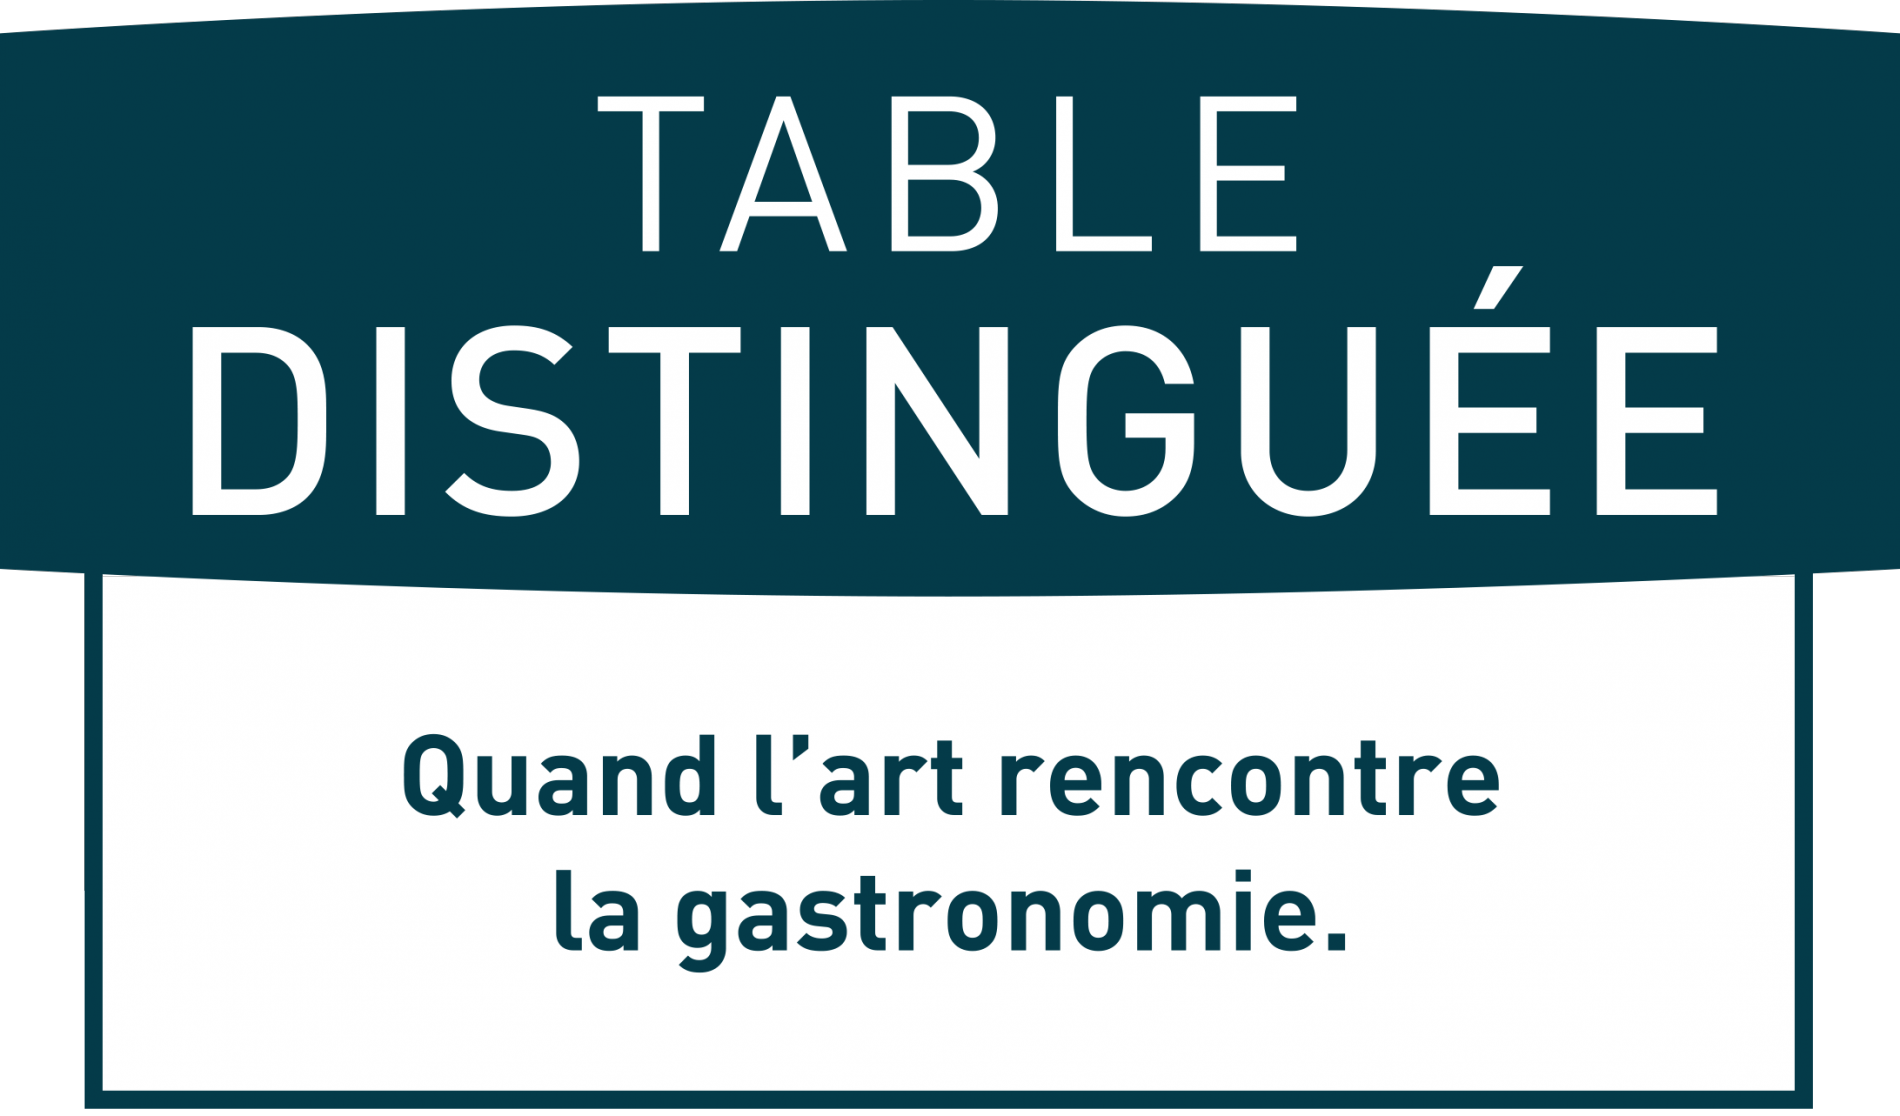 Logis Restaurant Table Distinguée